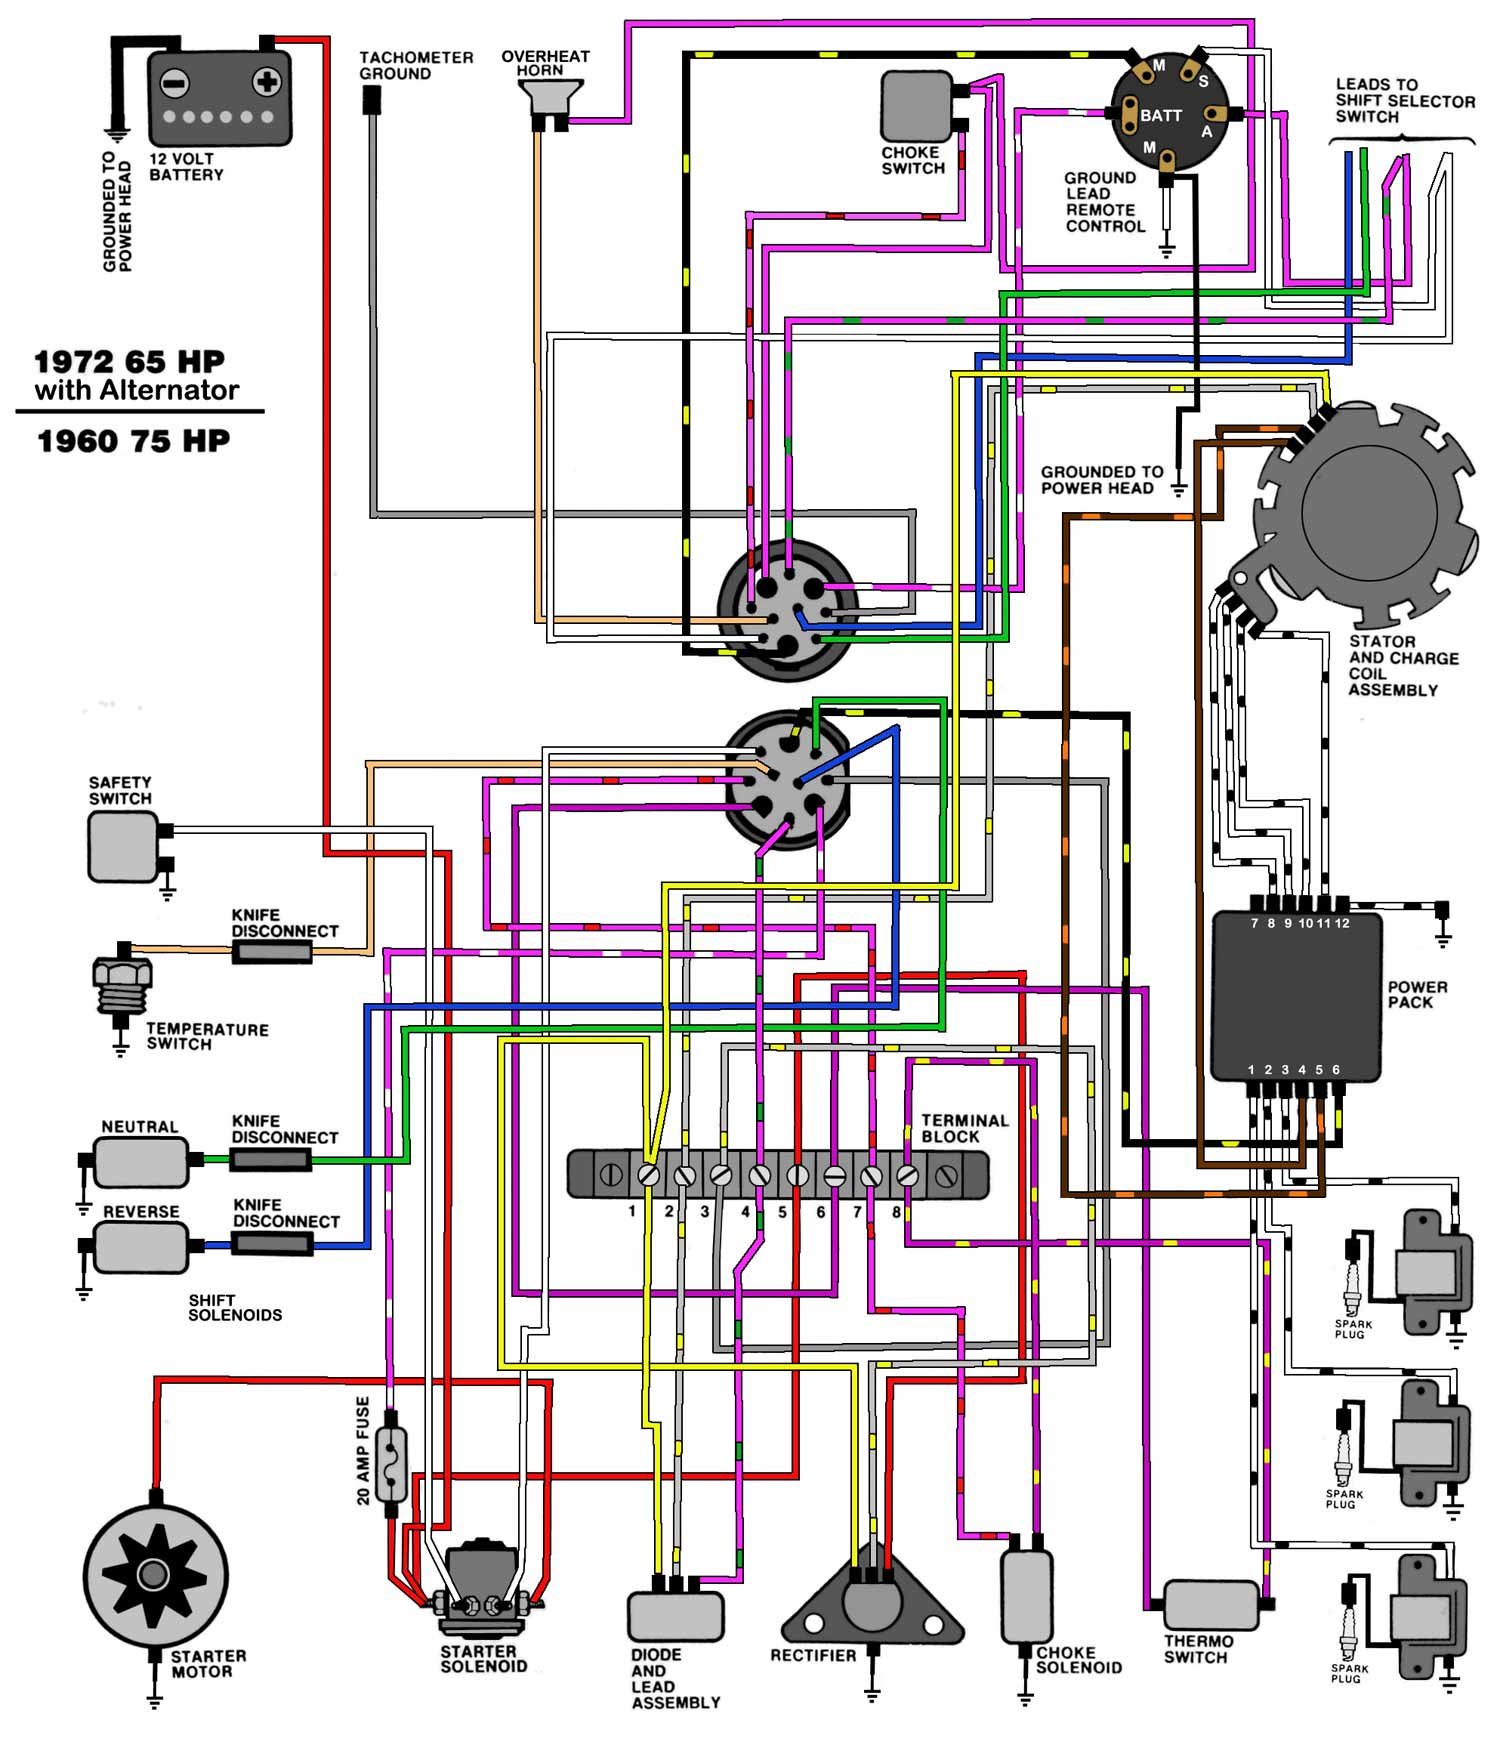 wiring diagram yamaha outboard ignition switch 73 dodge dart marine throttle control all data omc shifter change your idea with 08 hhr arm